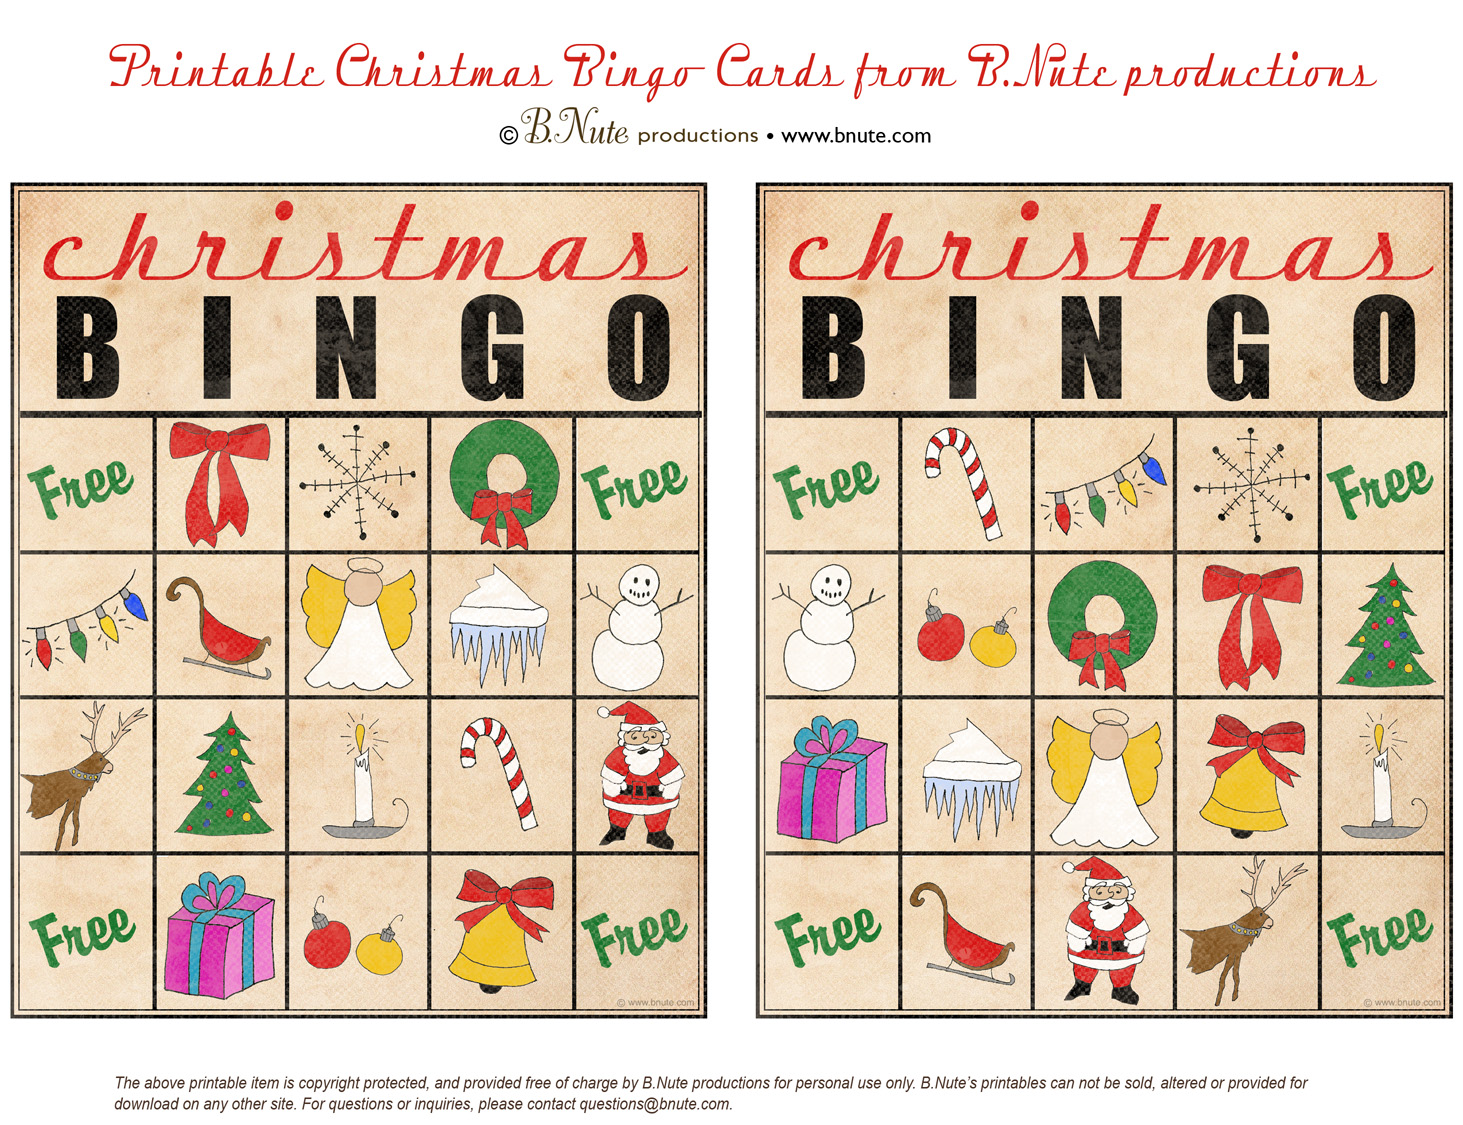 Free Printable Christmas Bingo Cards from B.Nute productions